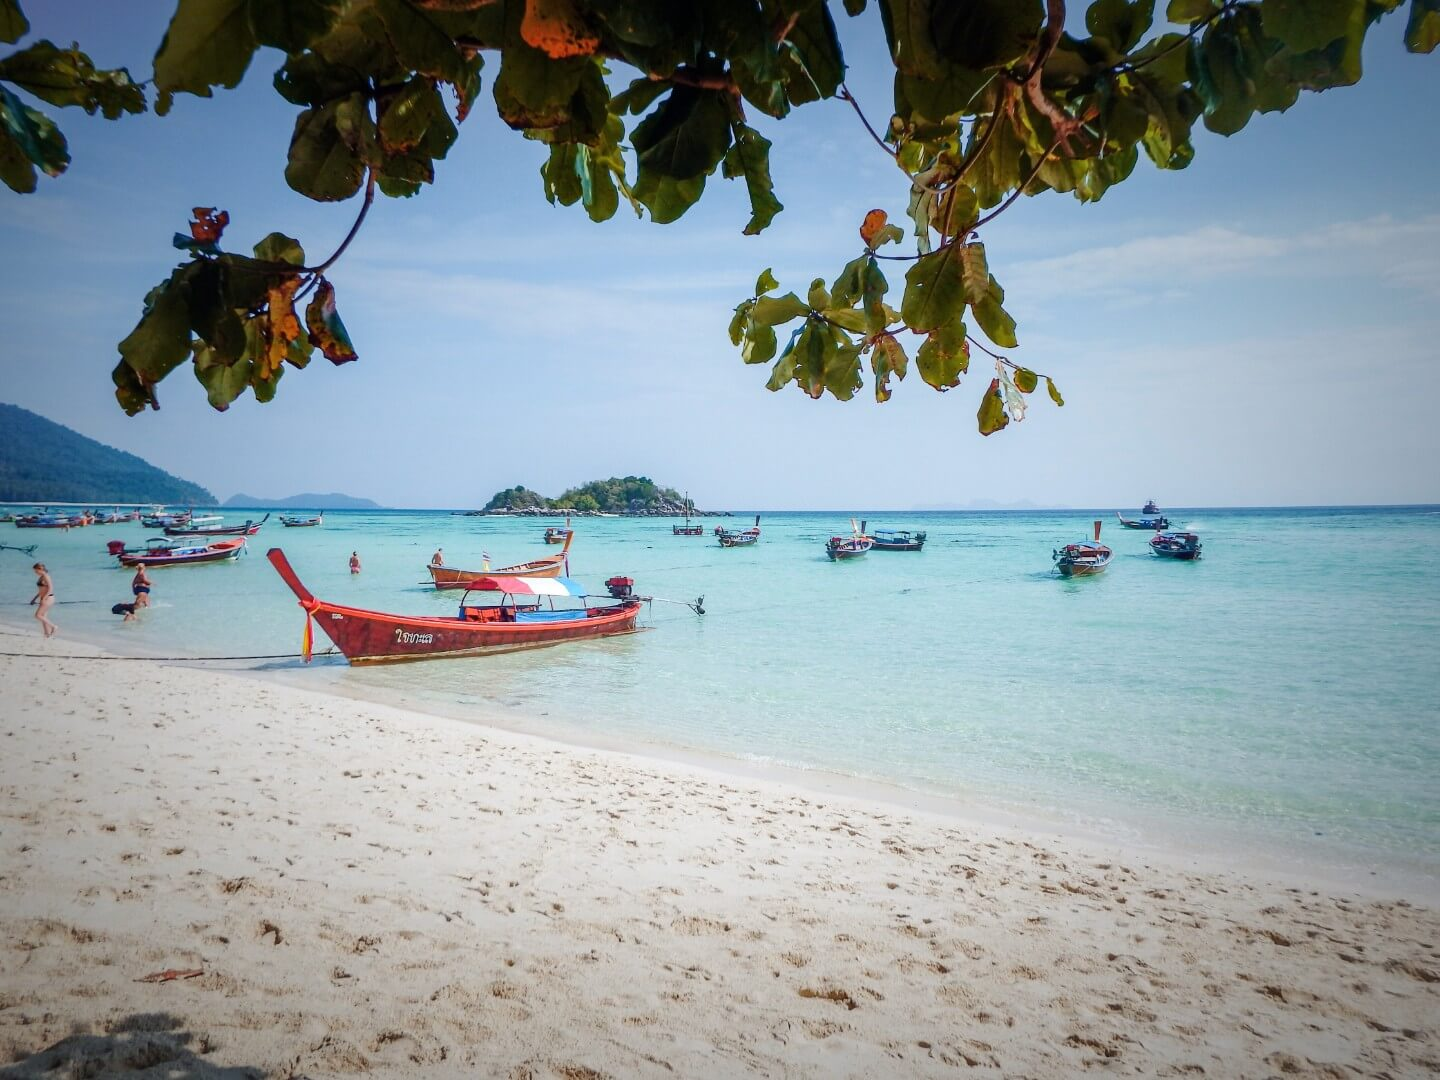 Koh Lipe, Thailand Island Hopping - A guide to off the beaten path Thai Island destinations